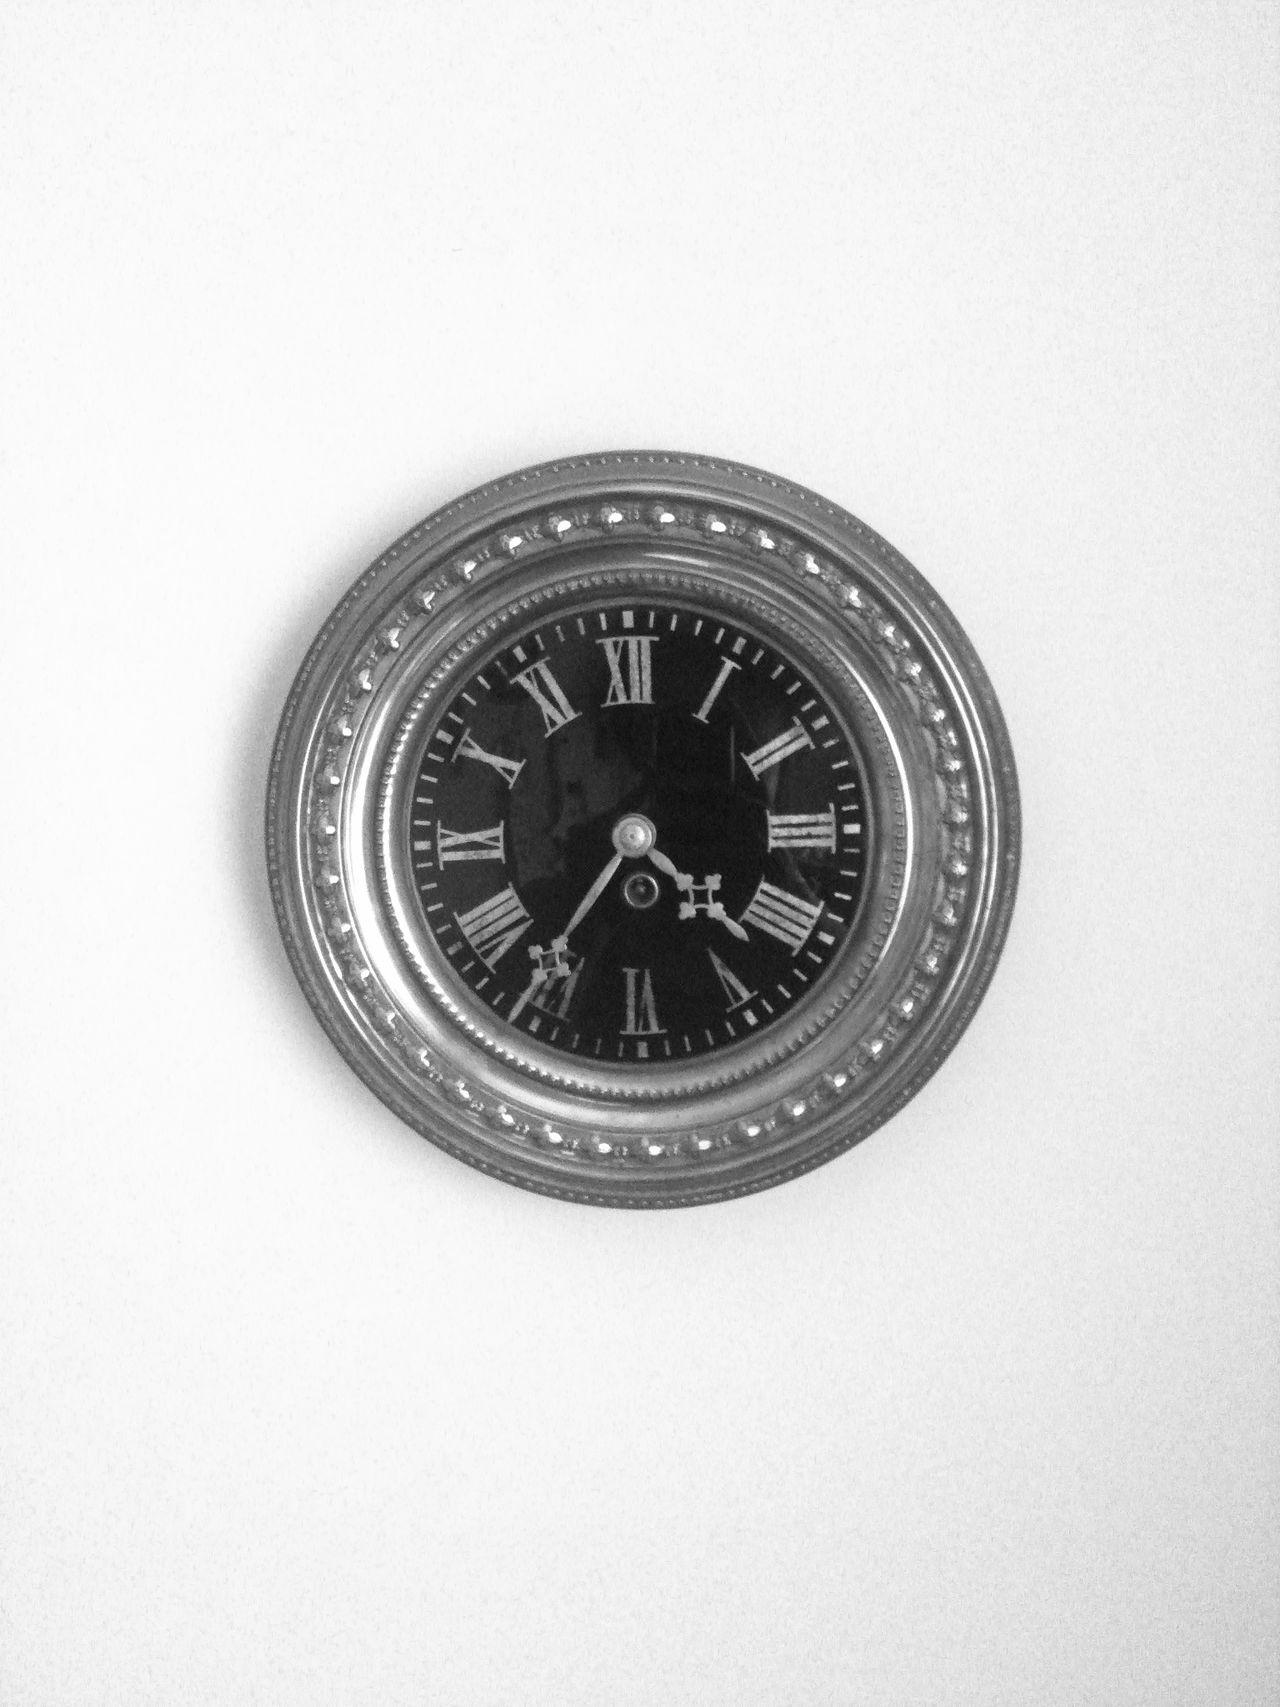 • 🌑 • Blackandwhite Blackandwhite Photography Blackandwhitephotography Clock Clockworks Close-up Day Minute Hand Monochrome Monochrome Photography No People Old Old-fashioned Single Object Time Vintage Vintage Photo Vintage Style White Background